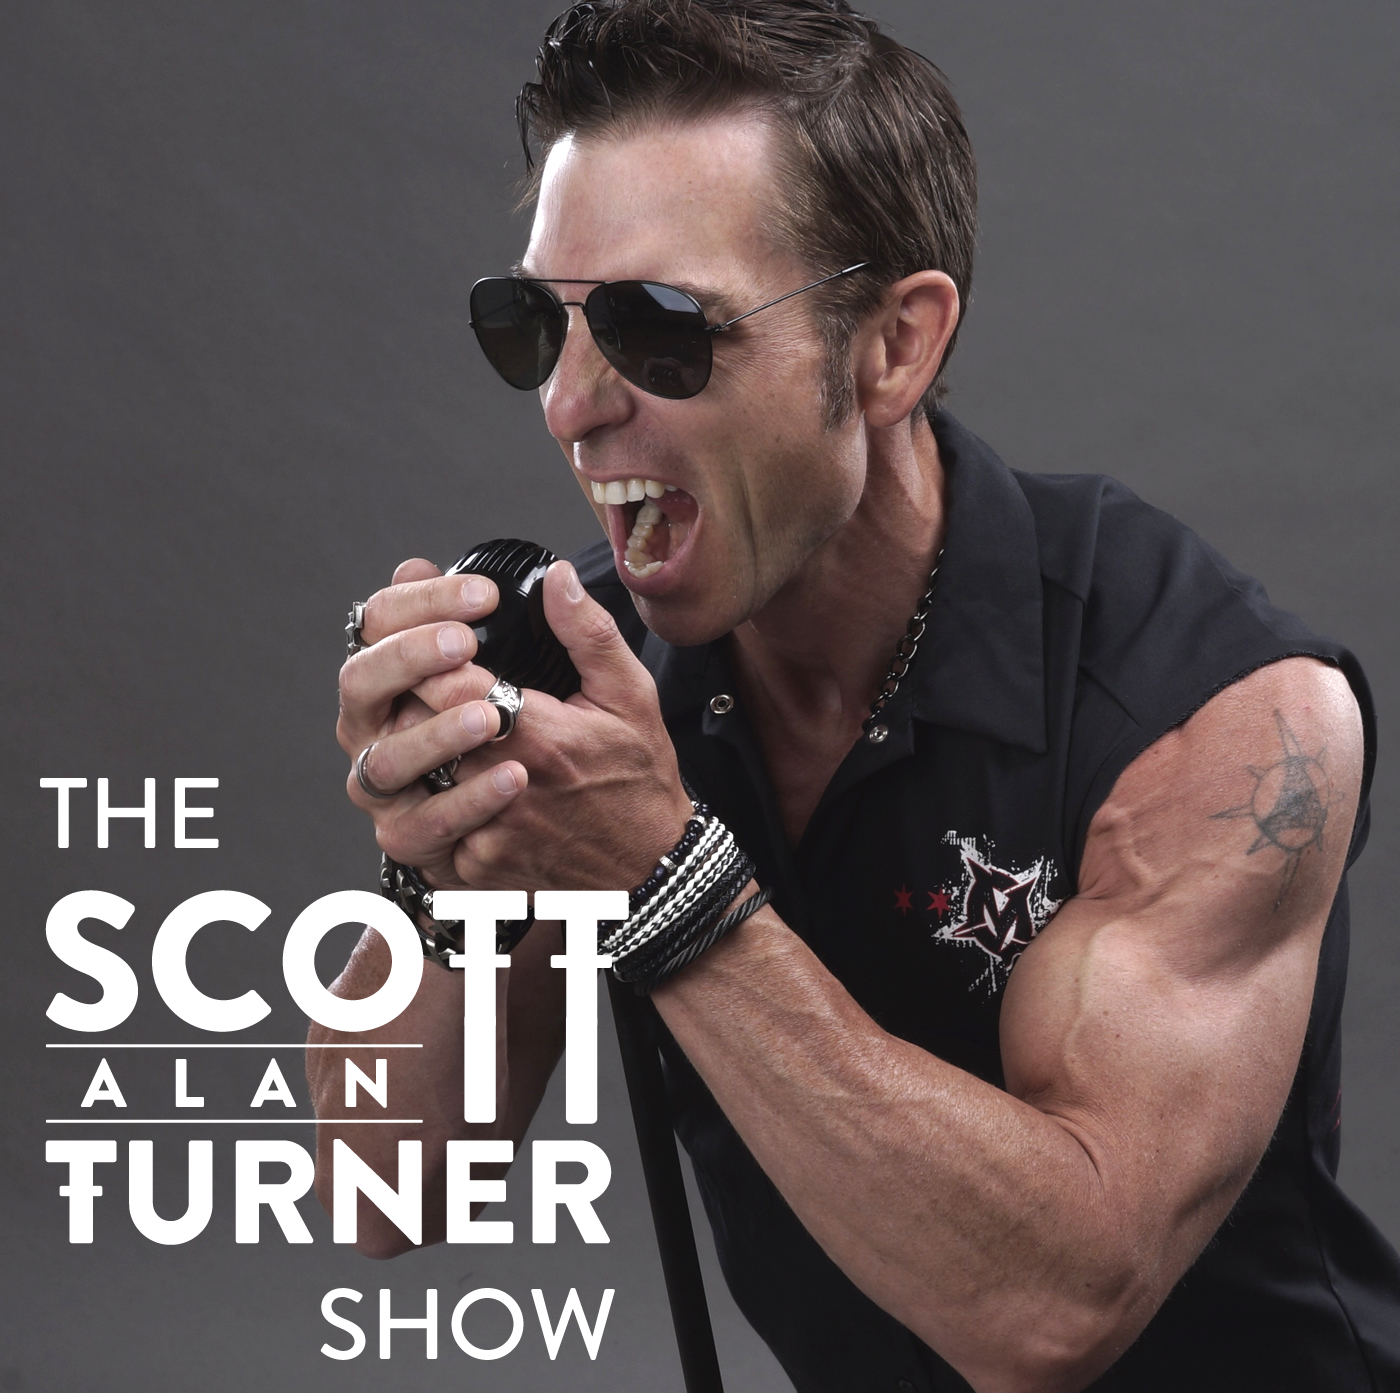 The Scott Alan Turner Show